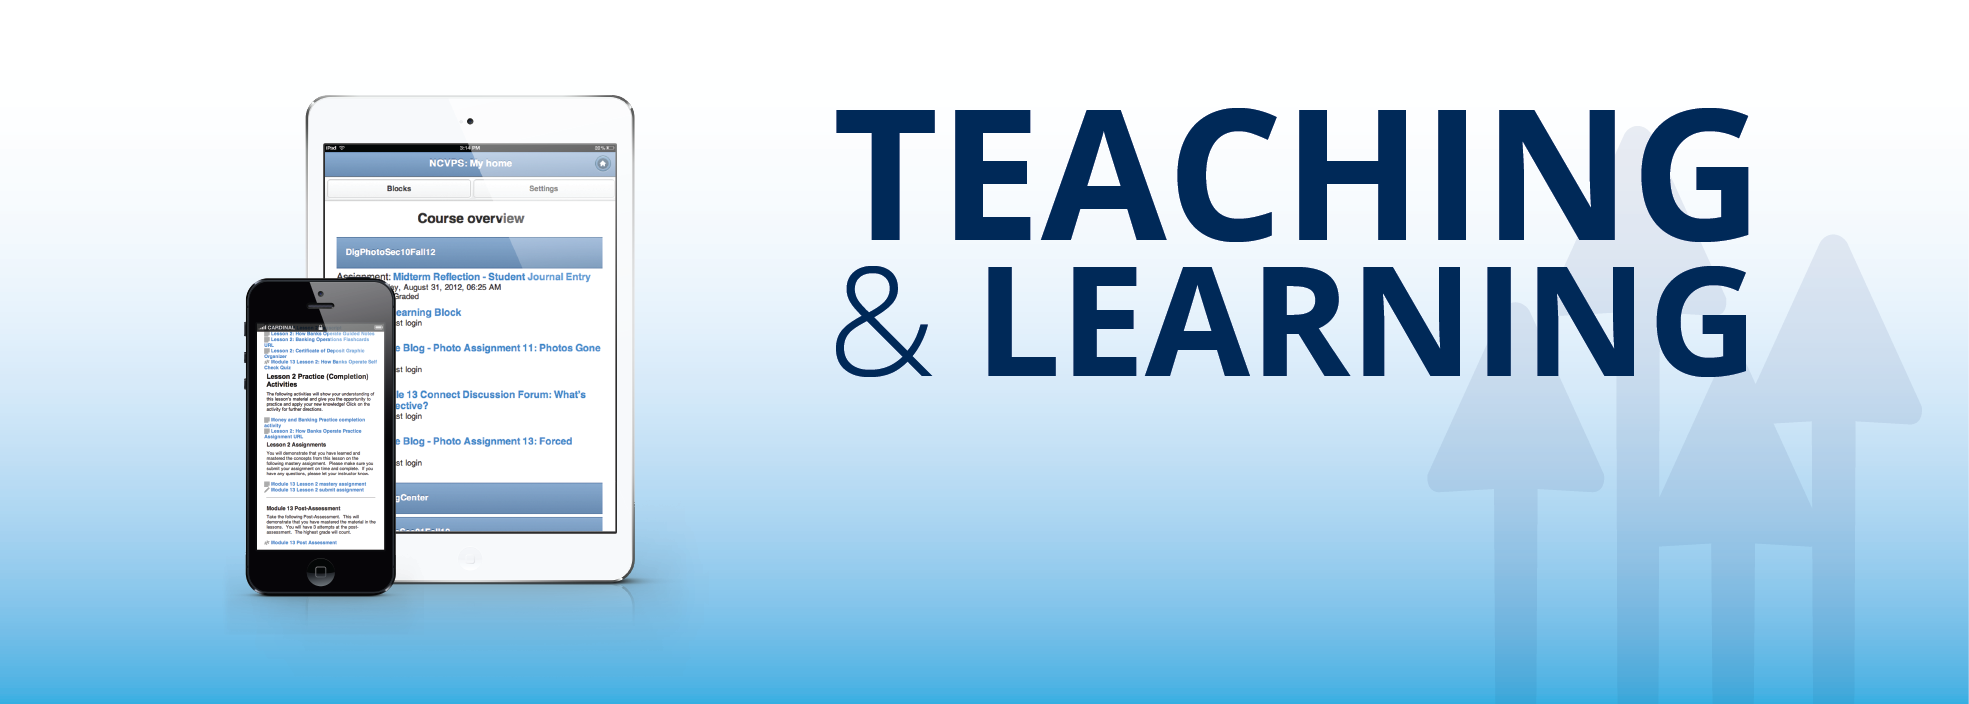 teaching and learning banner